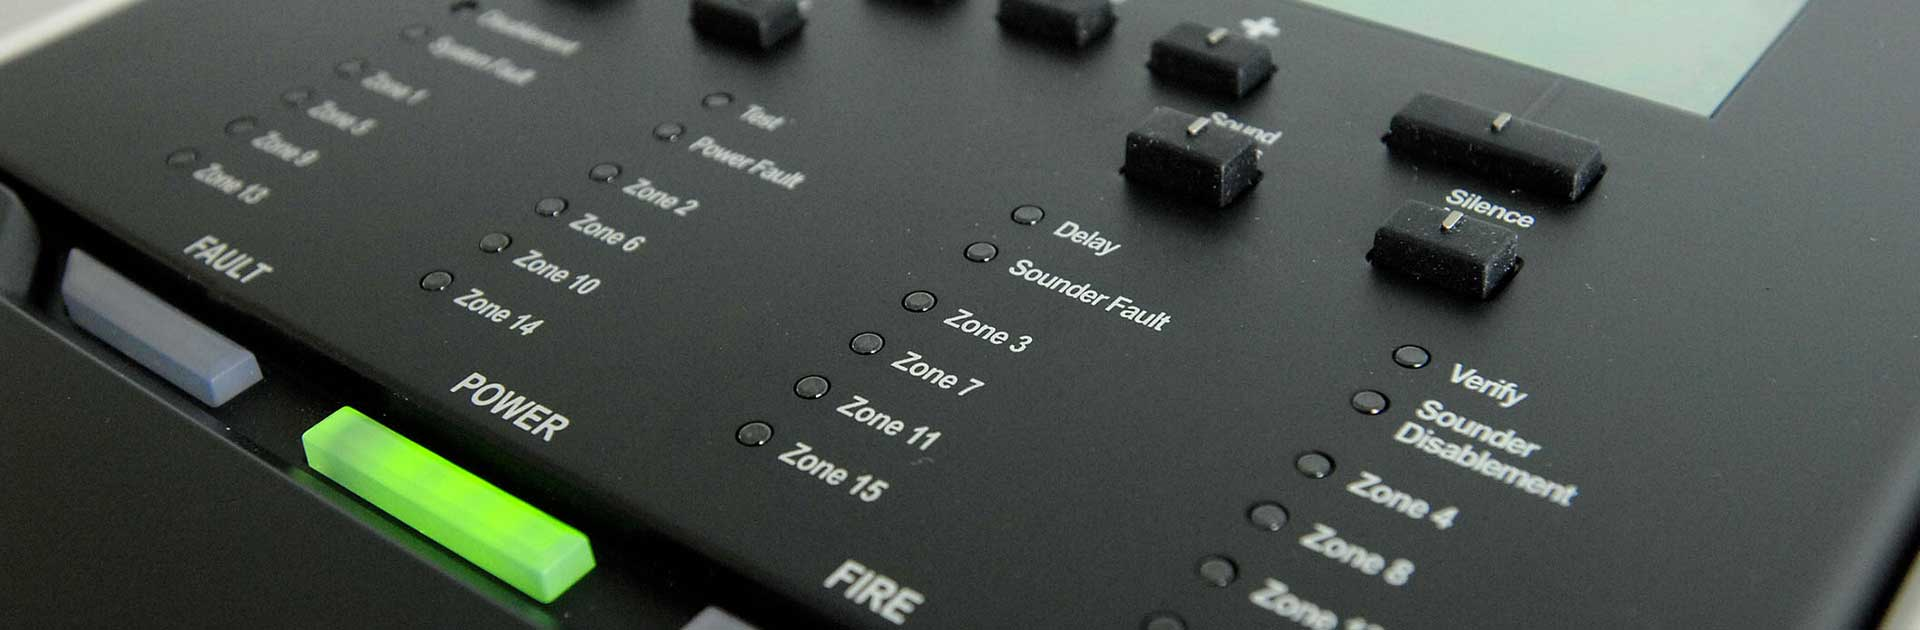 PA systems and voice alarms